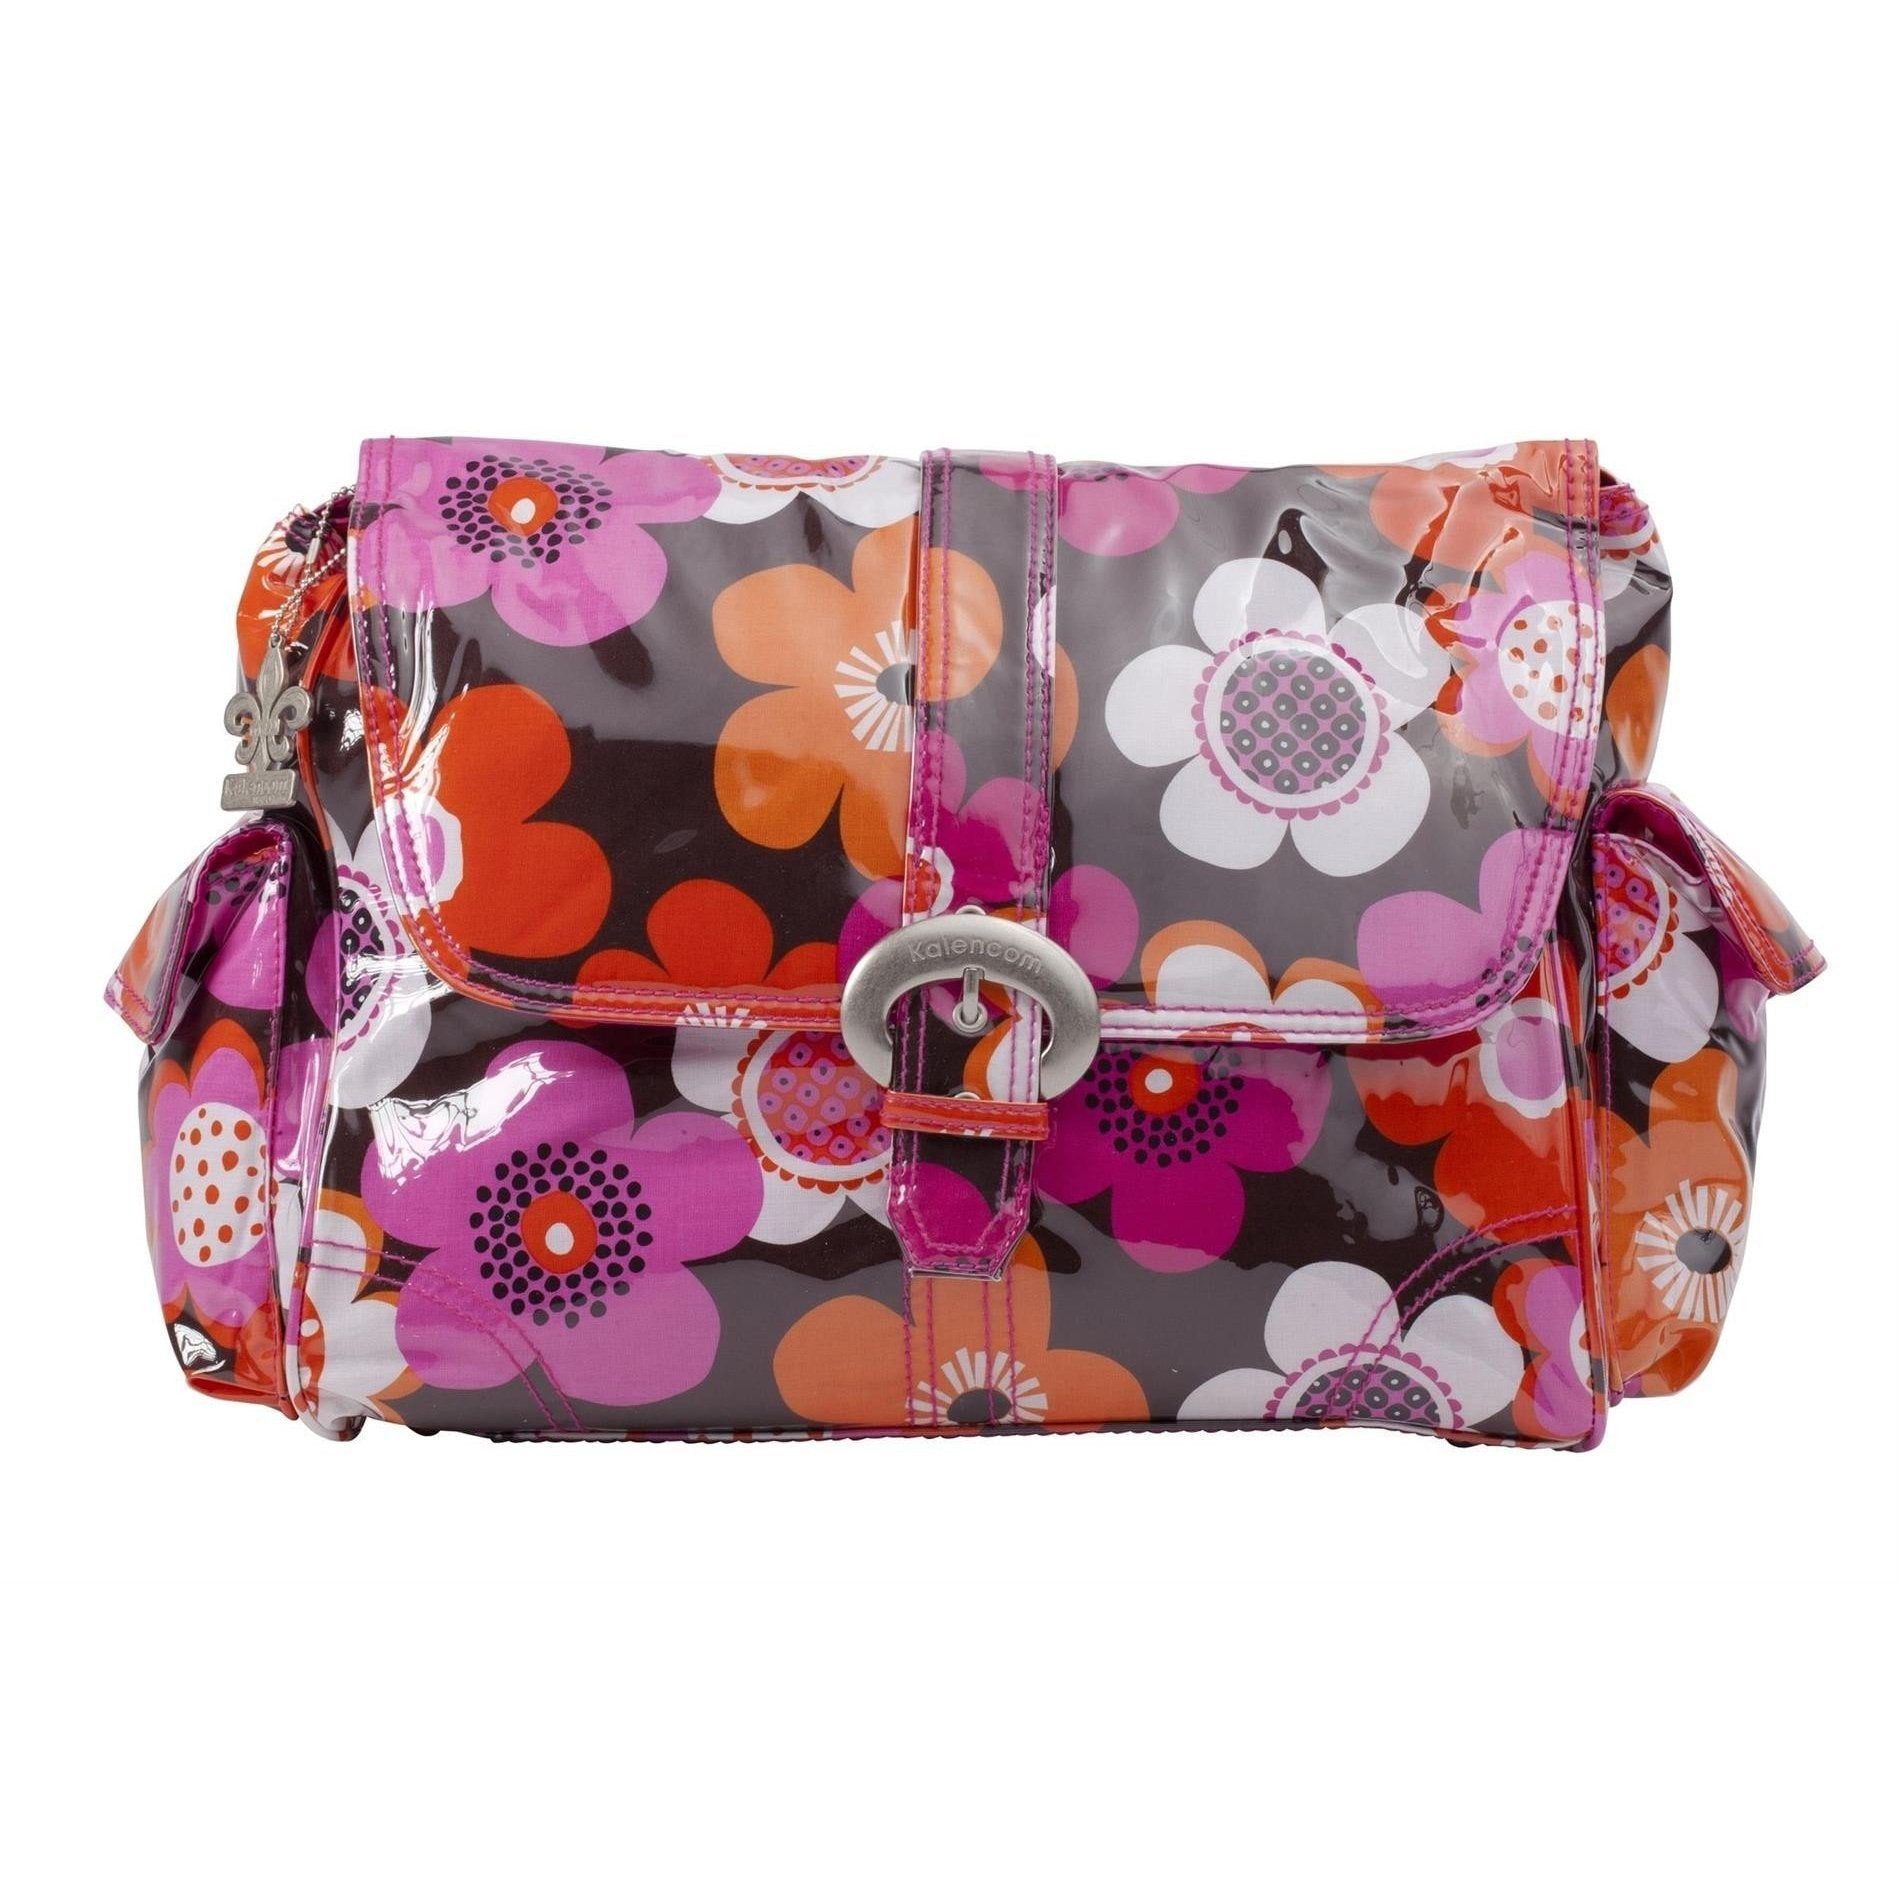 Groovy Laminated Buckle Diaper Bag | Style 2960 - Kalencom-Diaper Bags-Jack and Jill Boutique